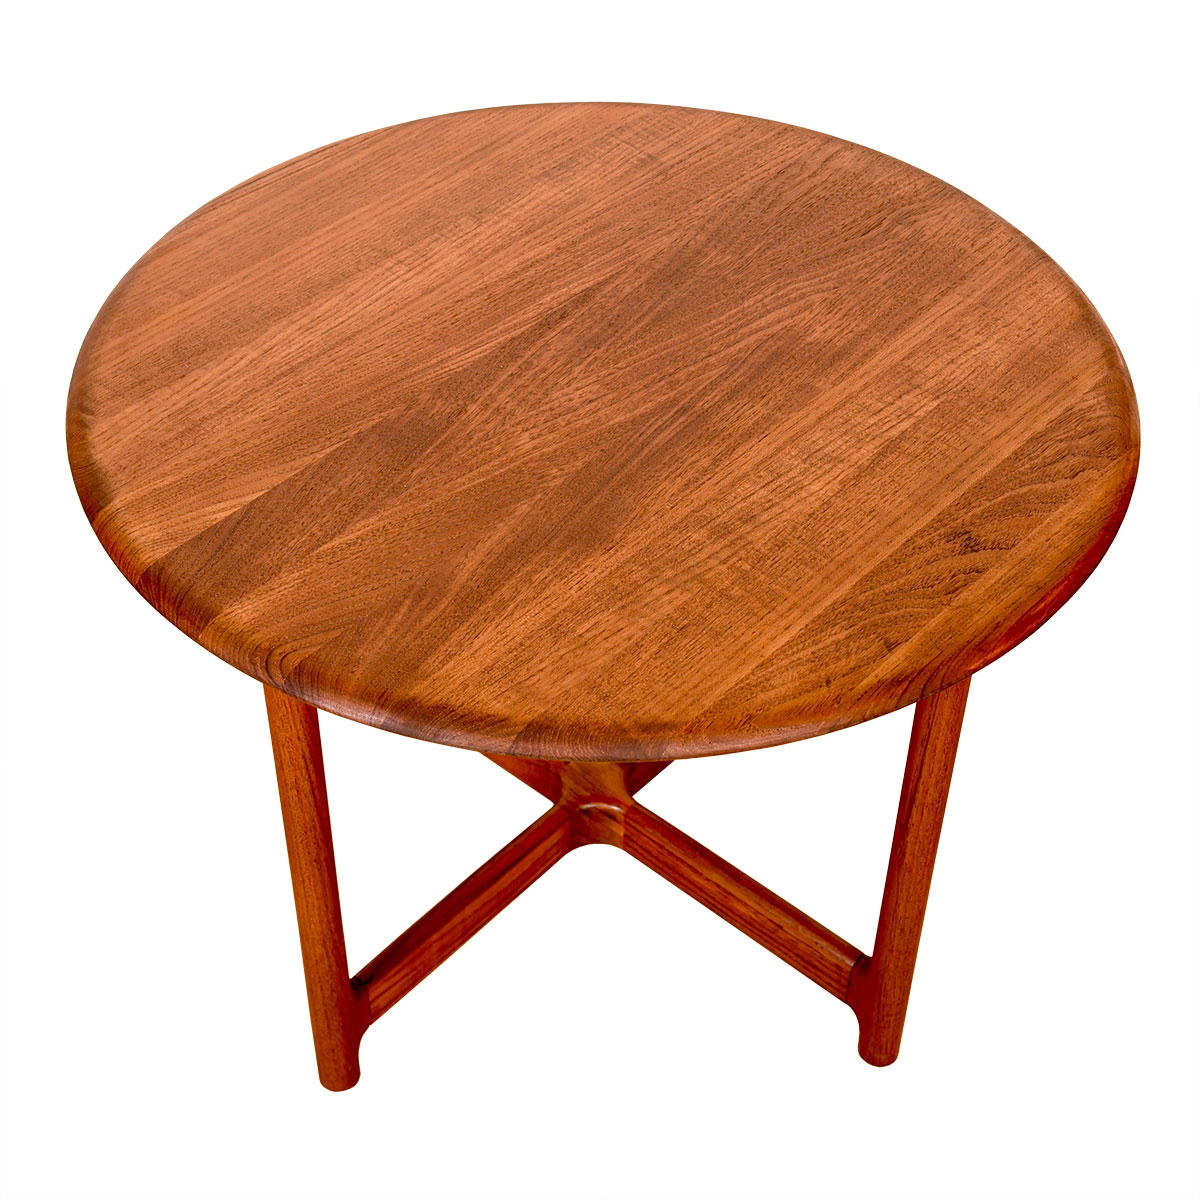 Danish Modern Solid-Teak Round Coffee | Accent Table